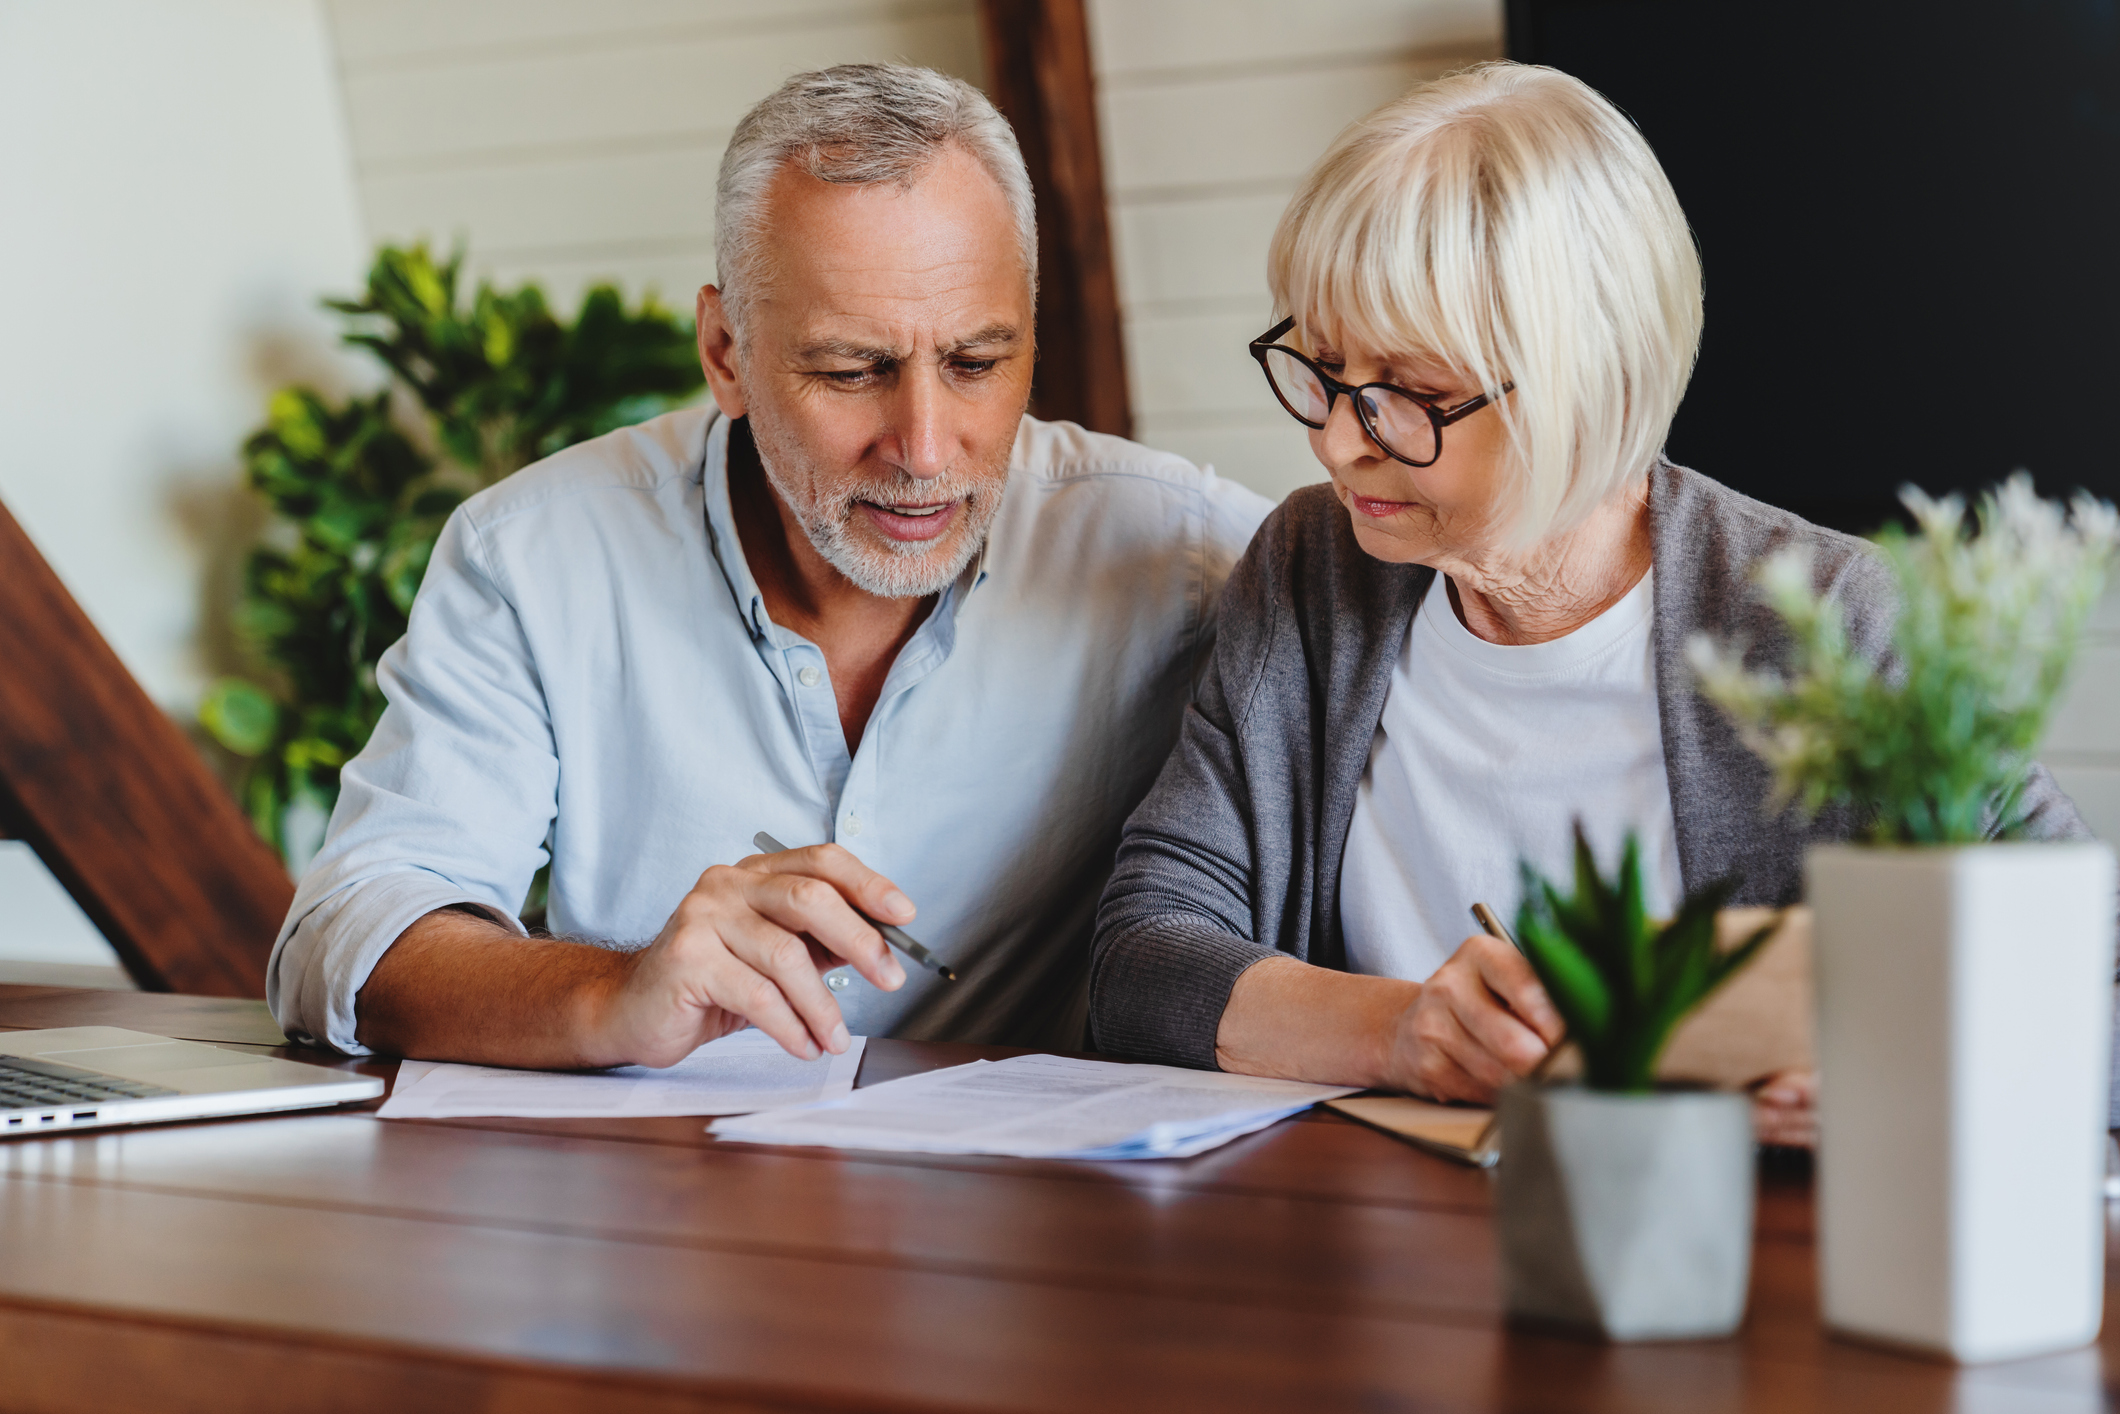 An older man and woman examine financial paperwork at their dinner table.